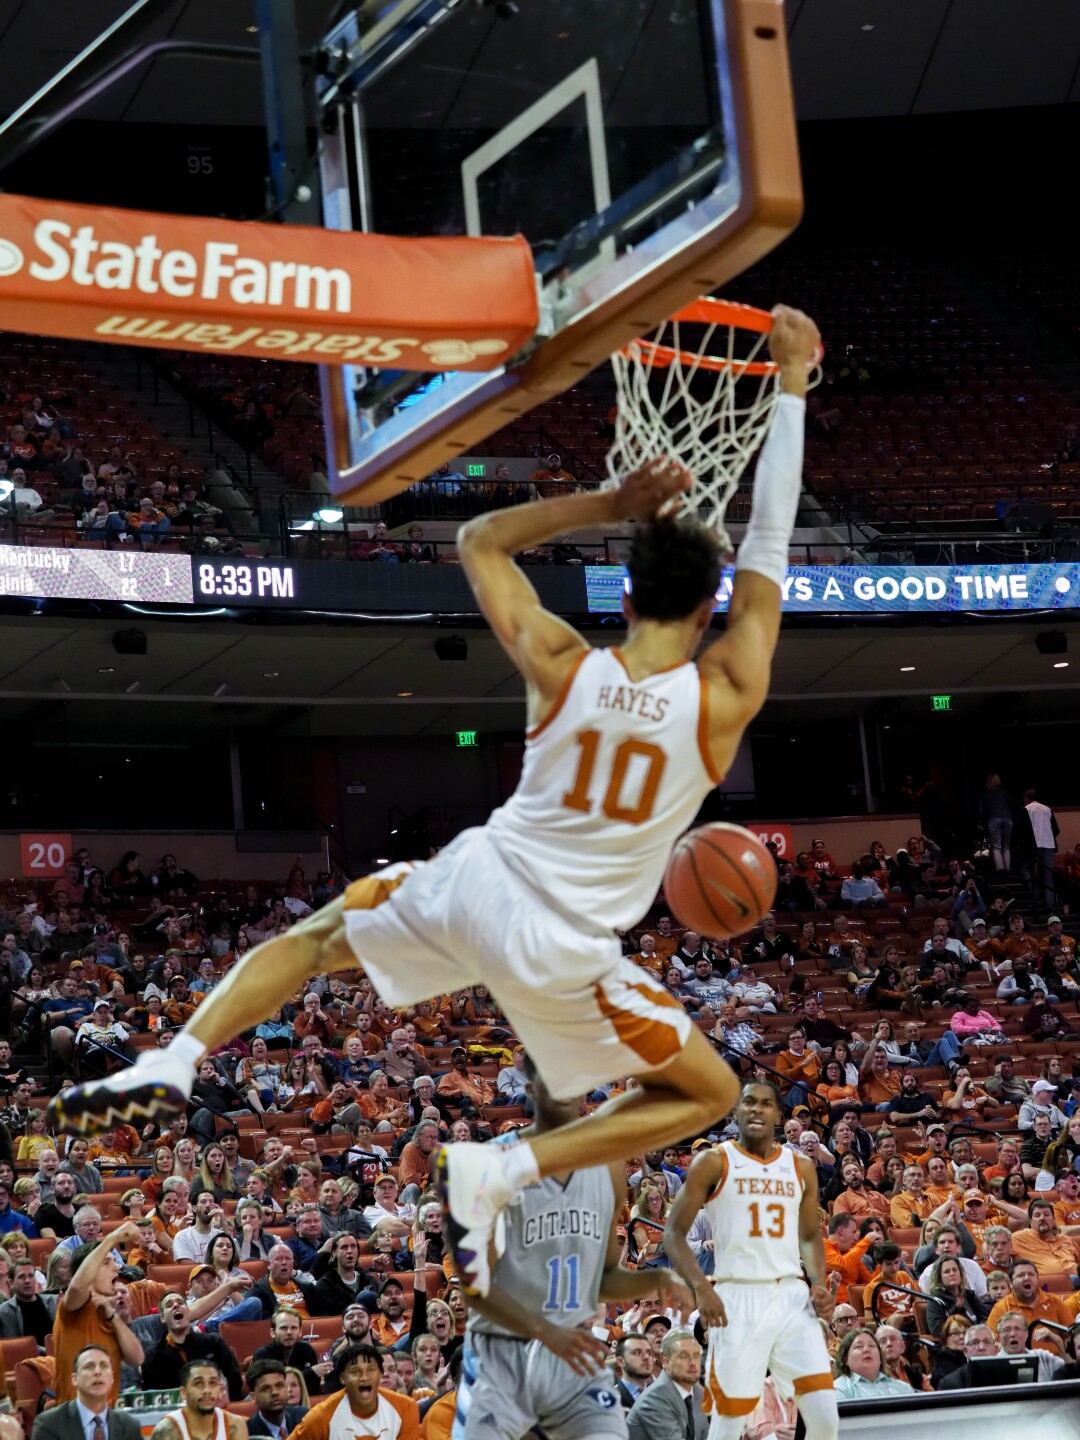 Texas freshman forward Jaxson Hayes, a 2018 Moeller graduate, is projected to be a lottery pick in the NBA Draft June 20.